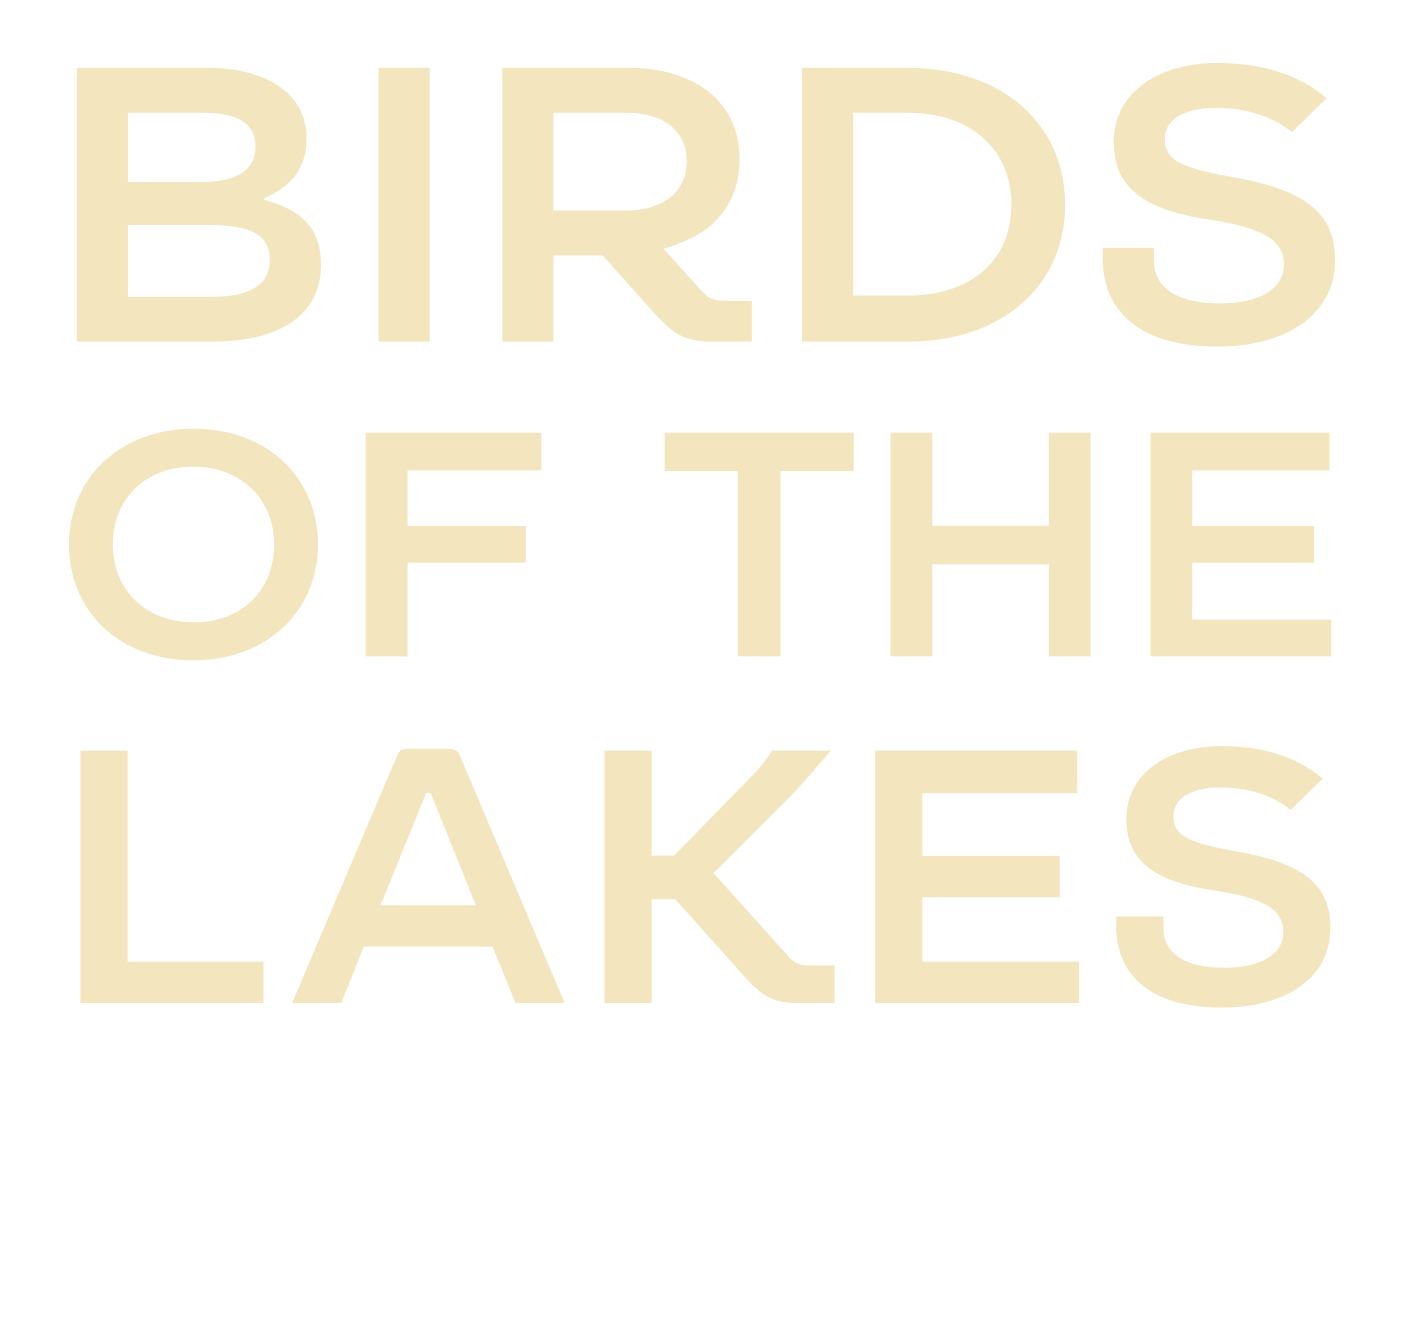 BIRDS OF THE LAKES, RETURN